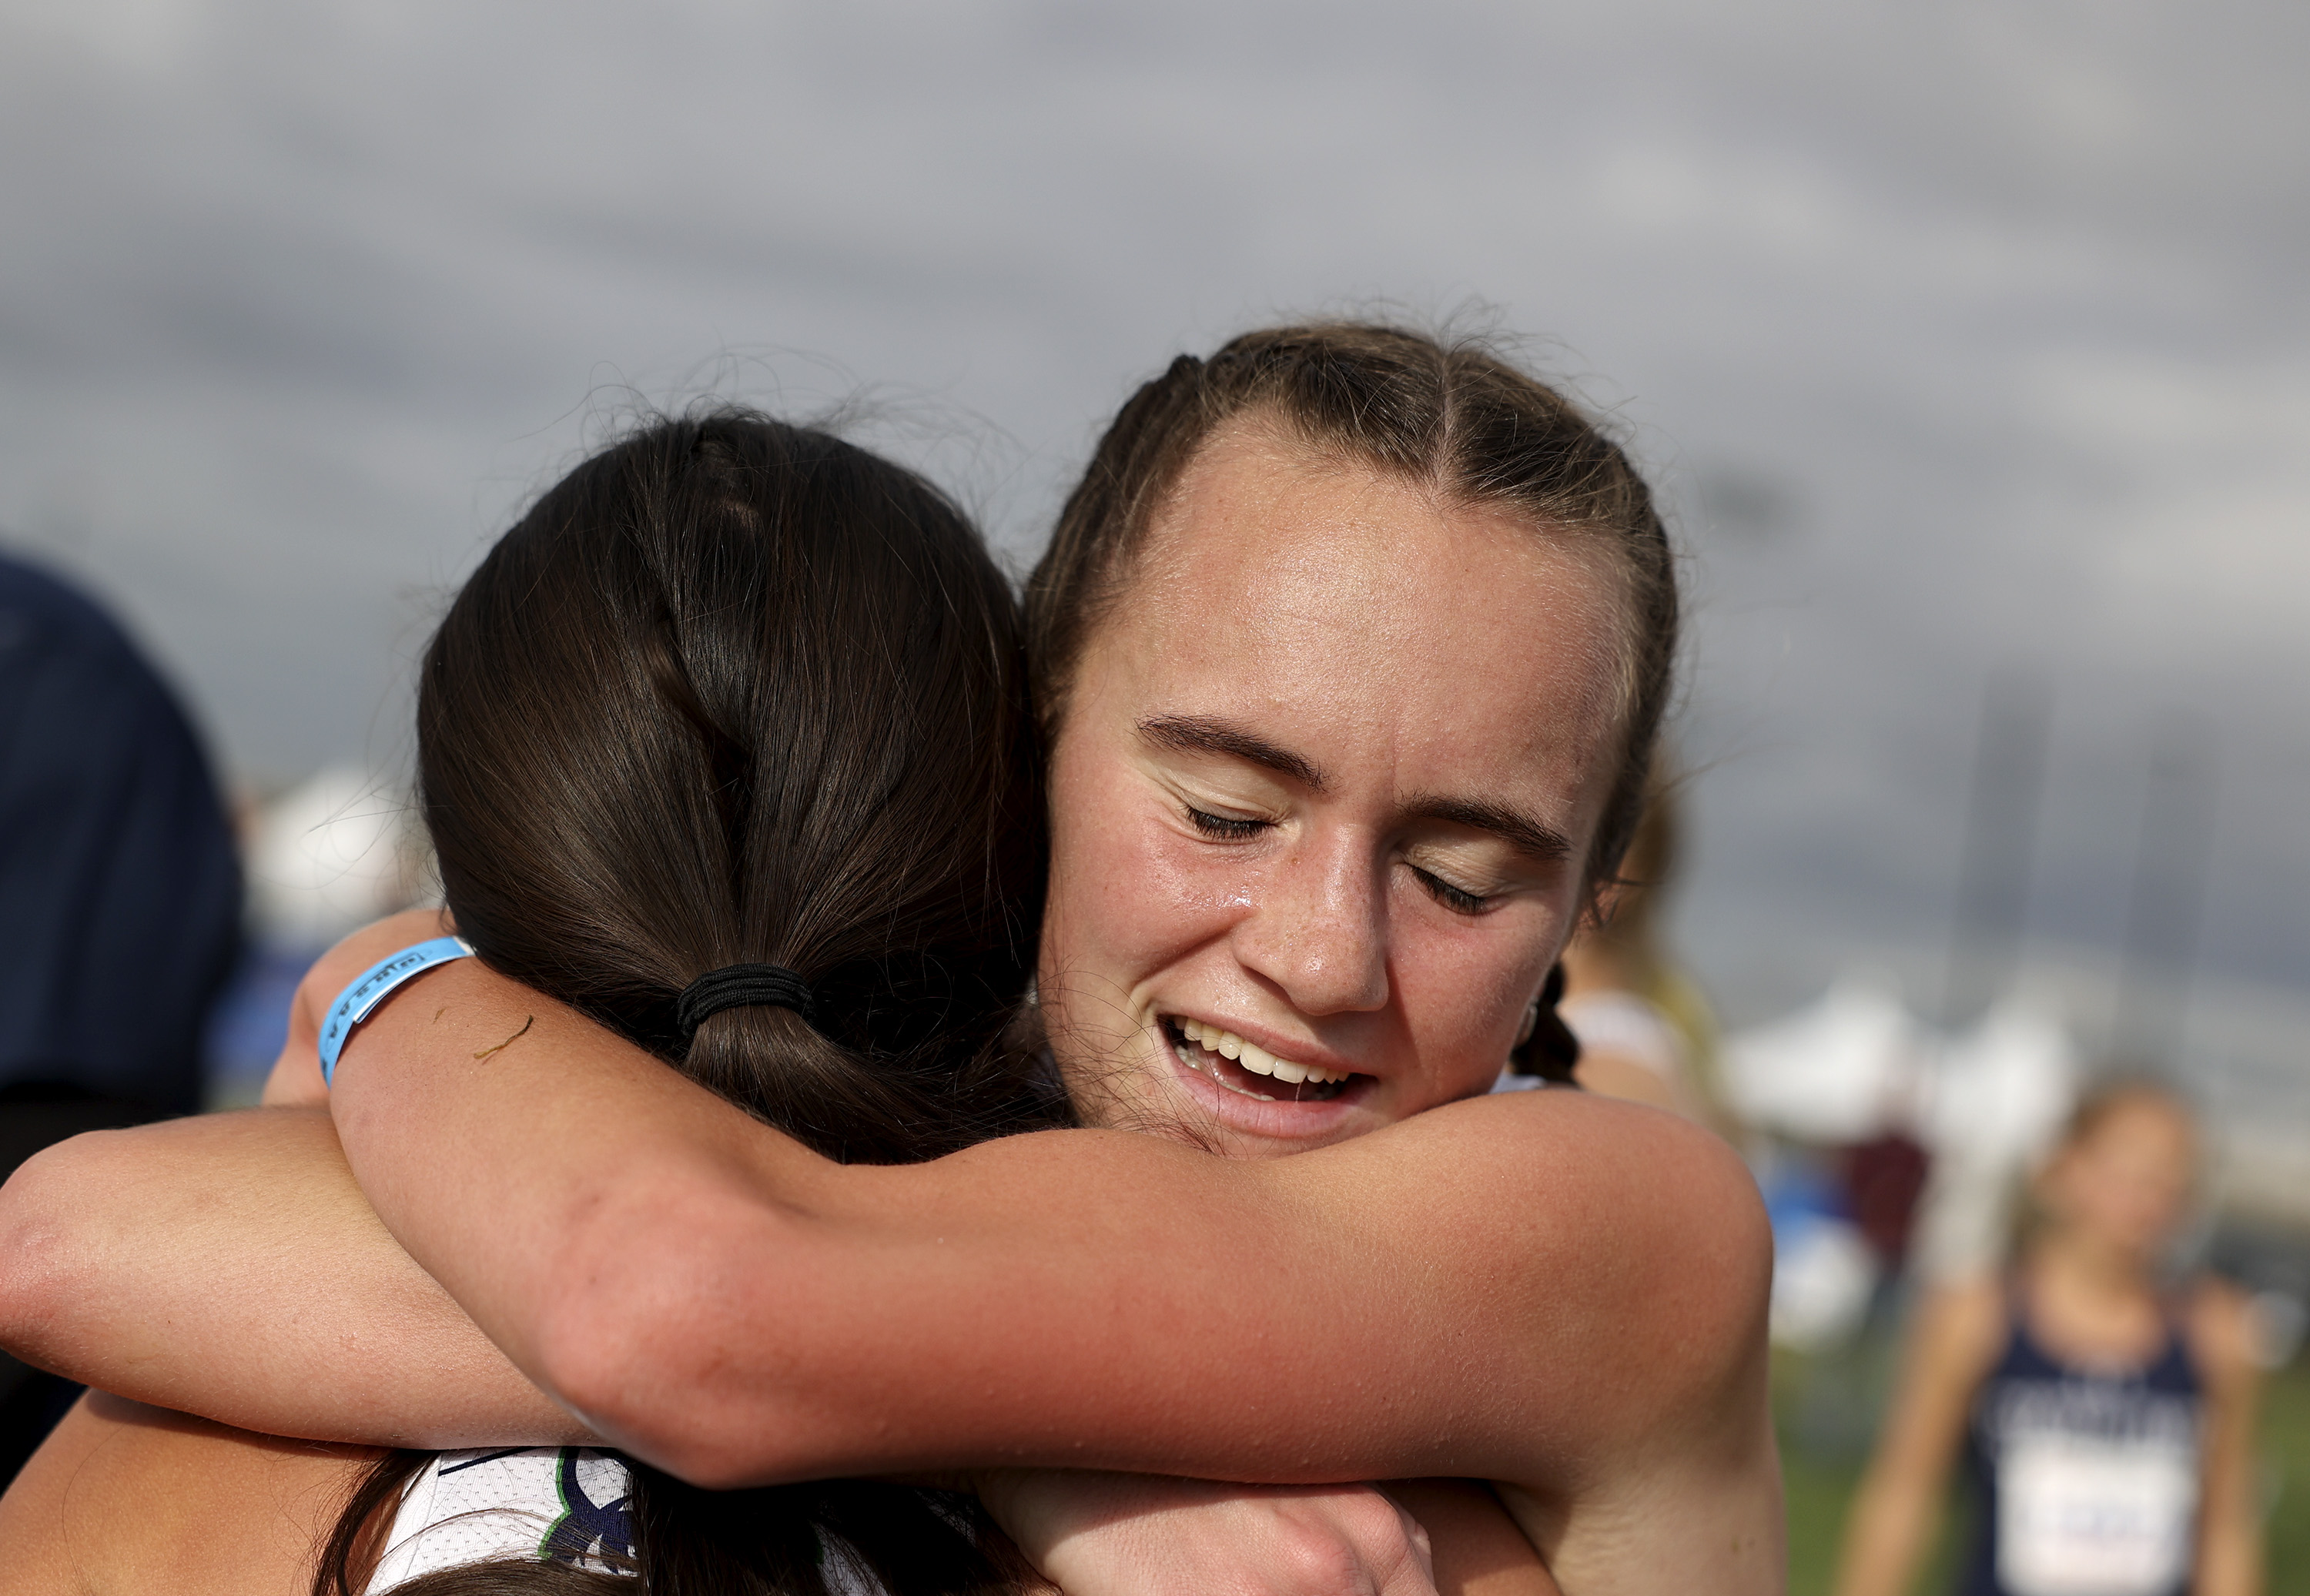 Raygan Peterson of Timpanogos High School is congratulated after finishing in first place in the 5A girls cross-country state championships.